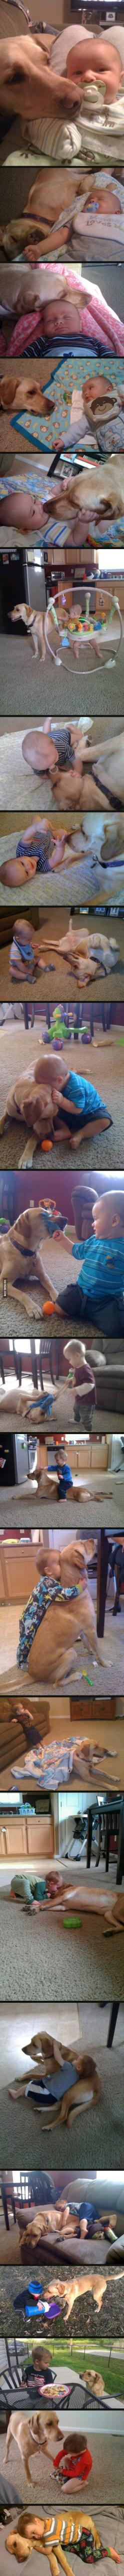 my heart just melted a little bit: Thing I Ve, Sweet, Best Friends, Pet, Growing Up, My Heart, Baby, Kid